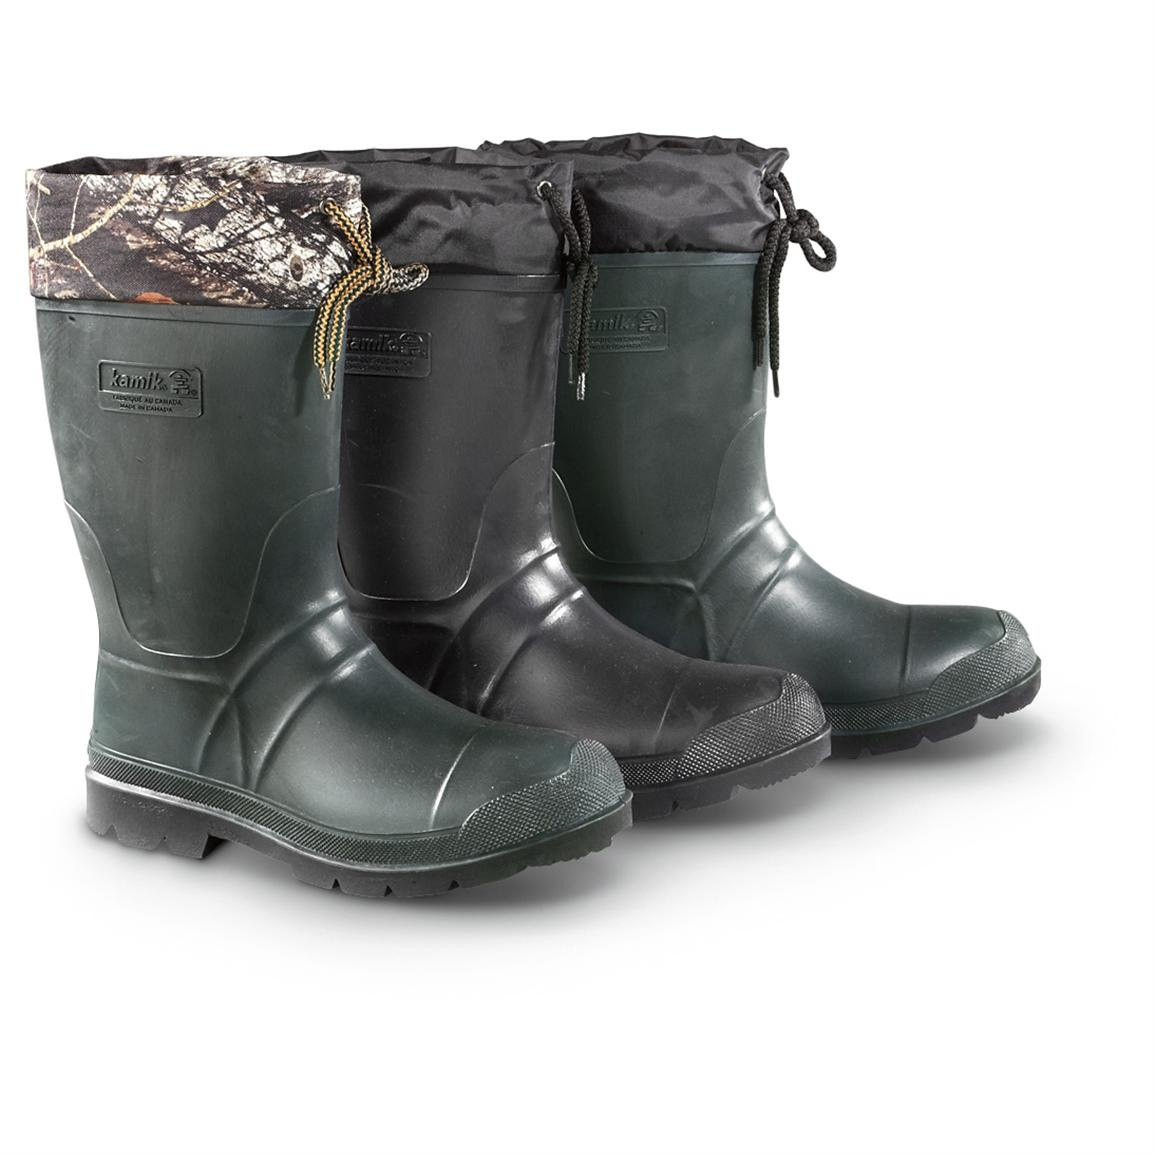 Kamik Men's Sportsman Rubber Boots, Waterproof, Insulated • Pictured from Left to Right: Camo, Black, Khaki